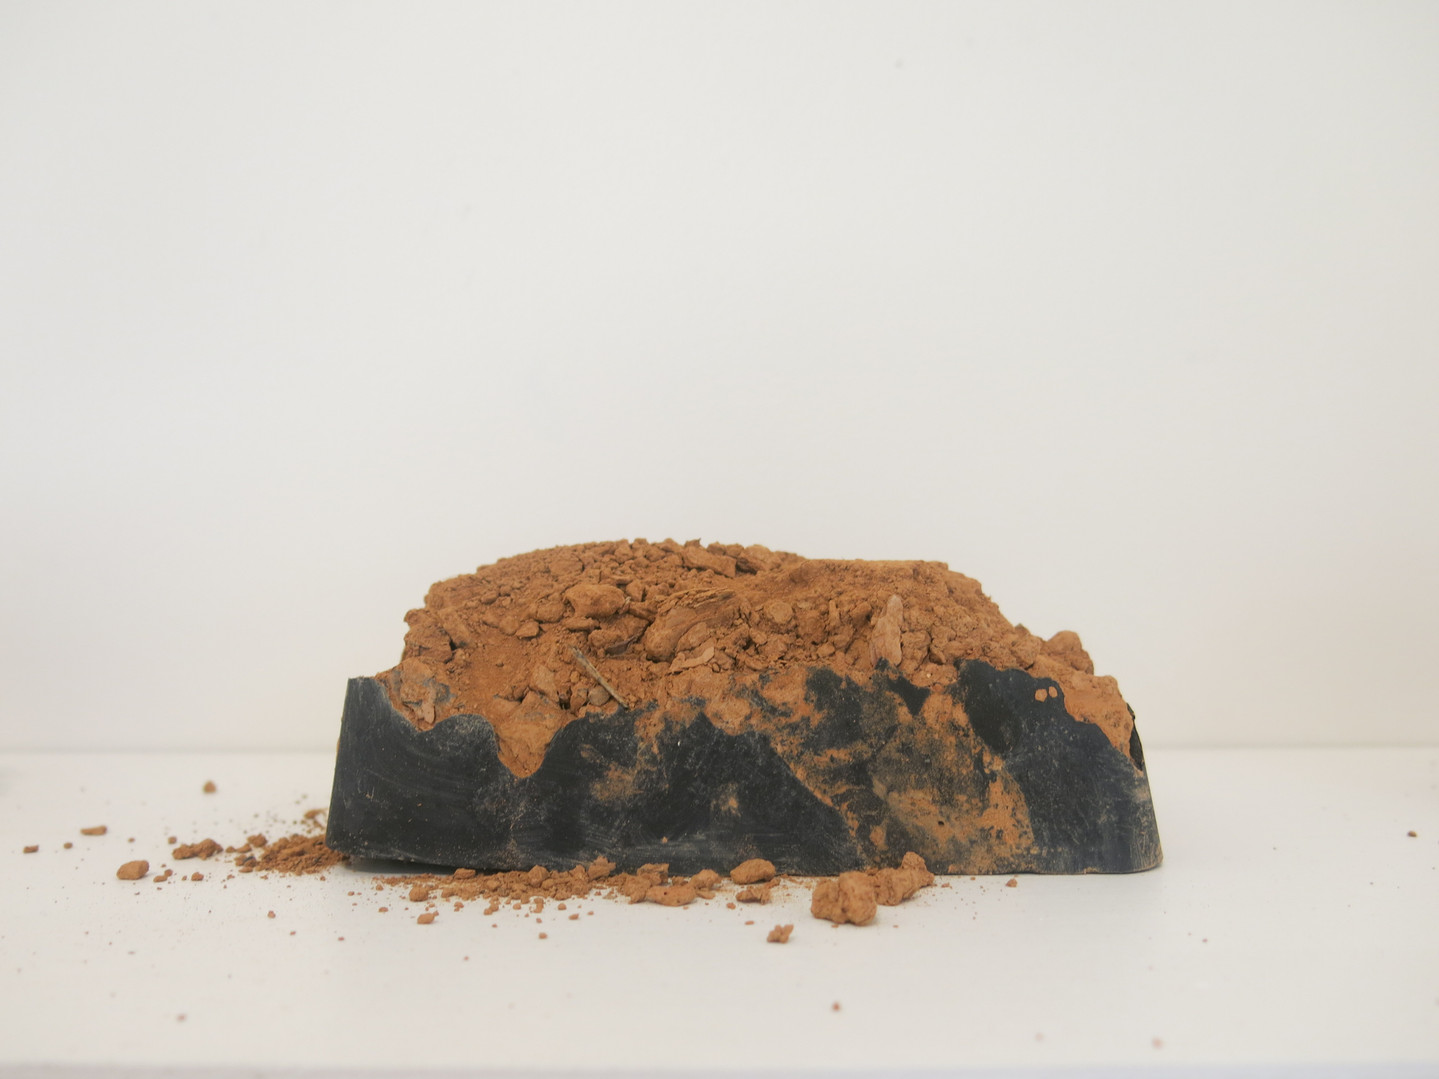 Decay Block II, 2018, Cement, clay & iron oxide sculpture, 20x15x10cm